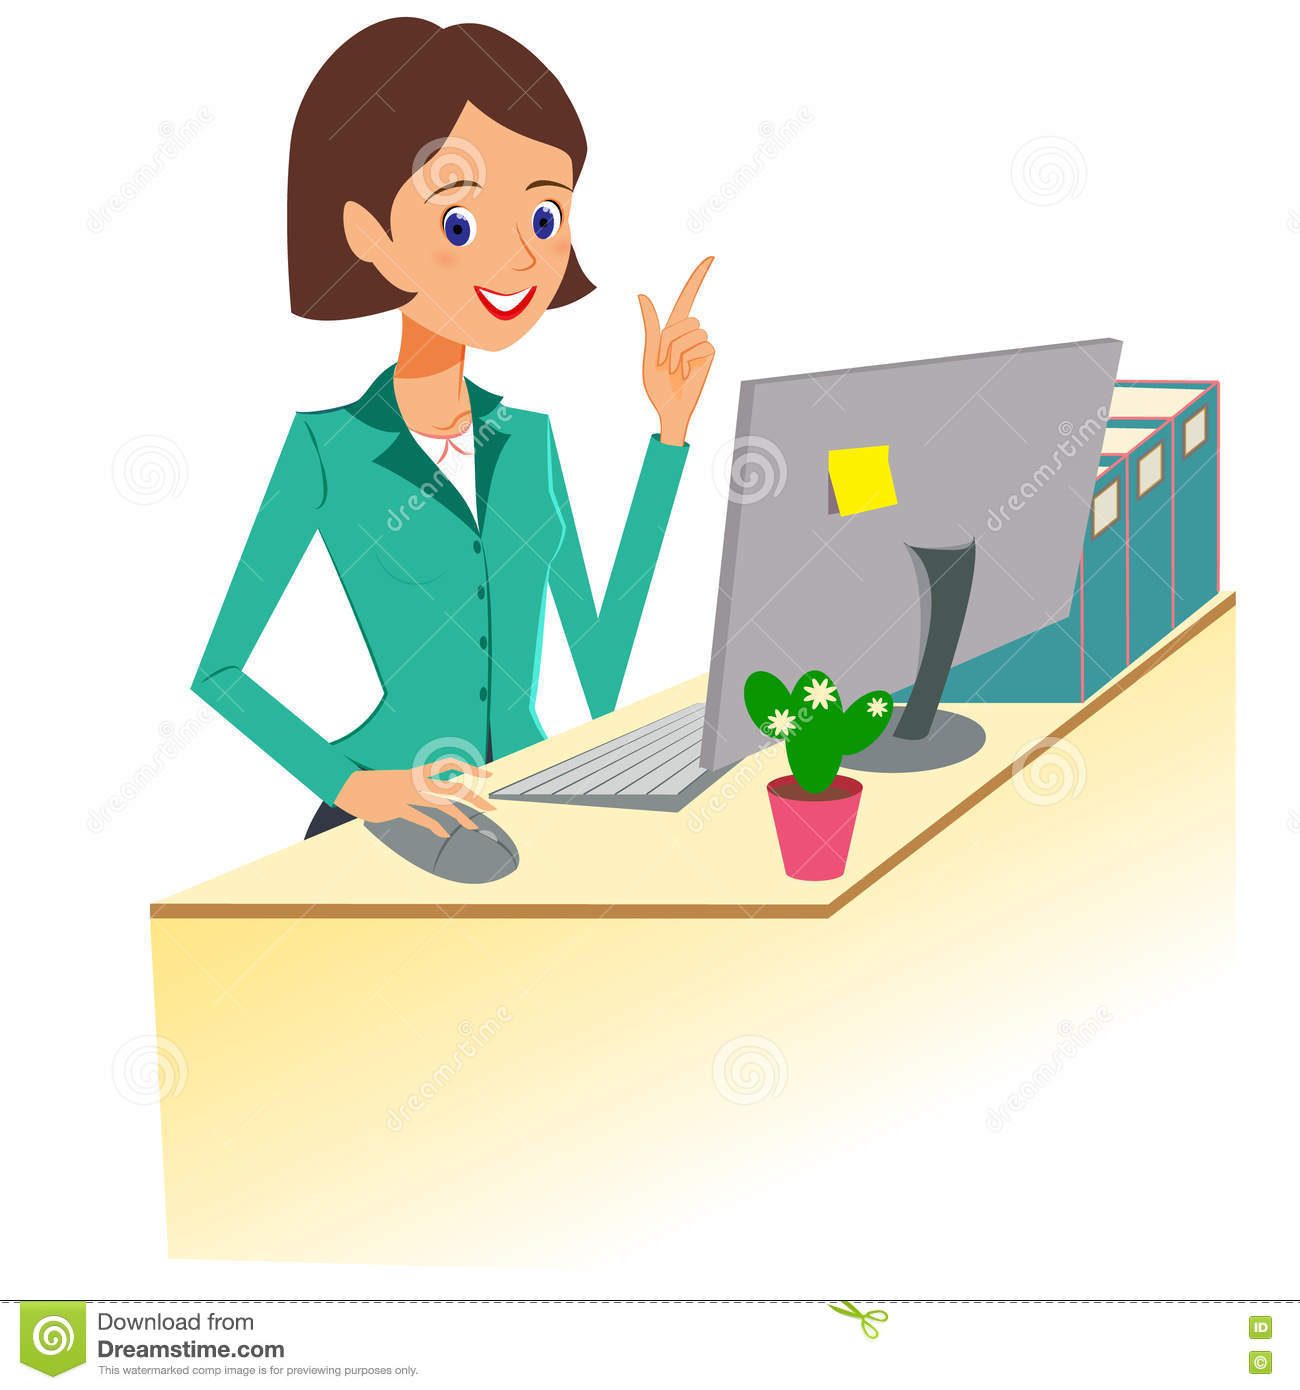 business-woman-working-office-character-vector-illustration-cheerful-smiling-cartoon-female-desk-gesturing-70538903.jpg